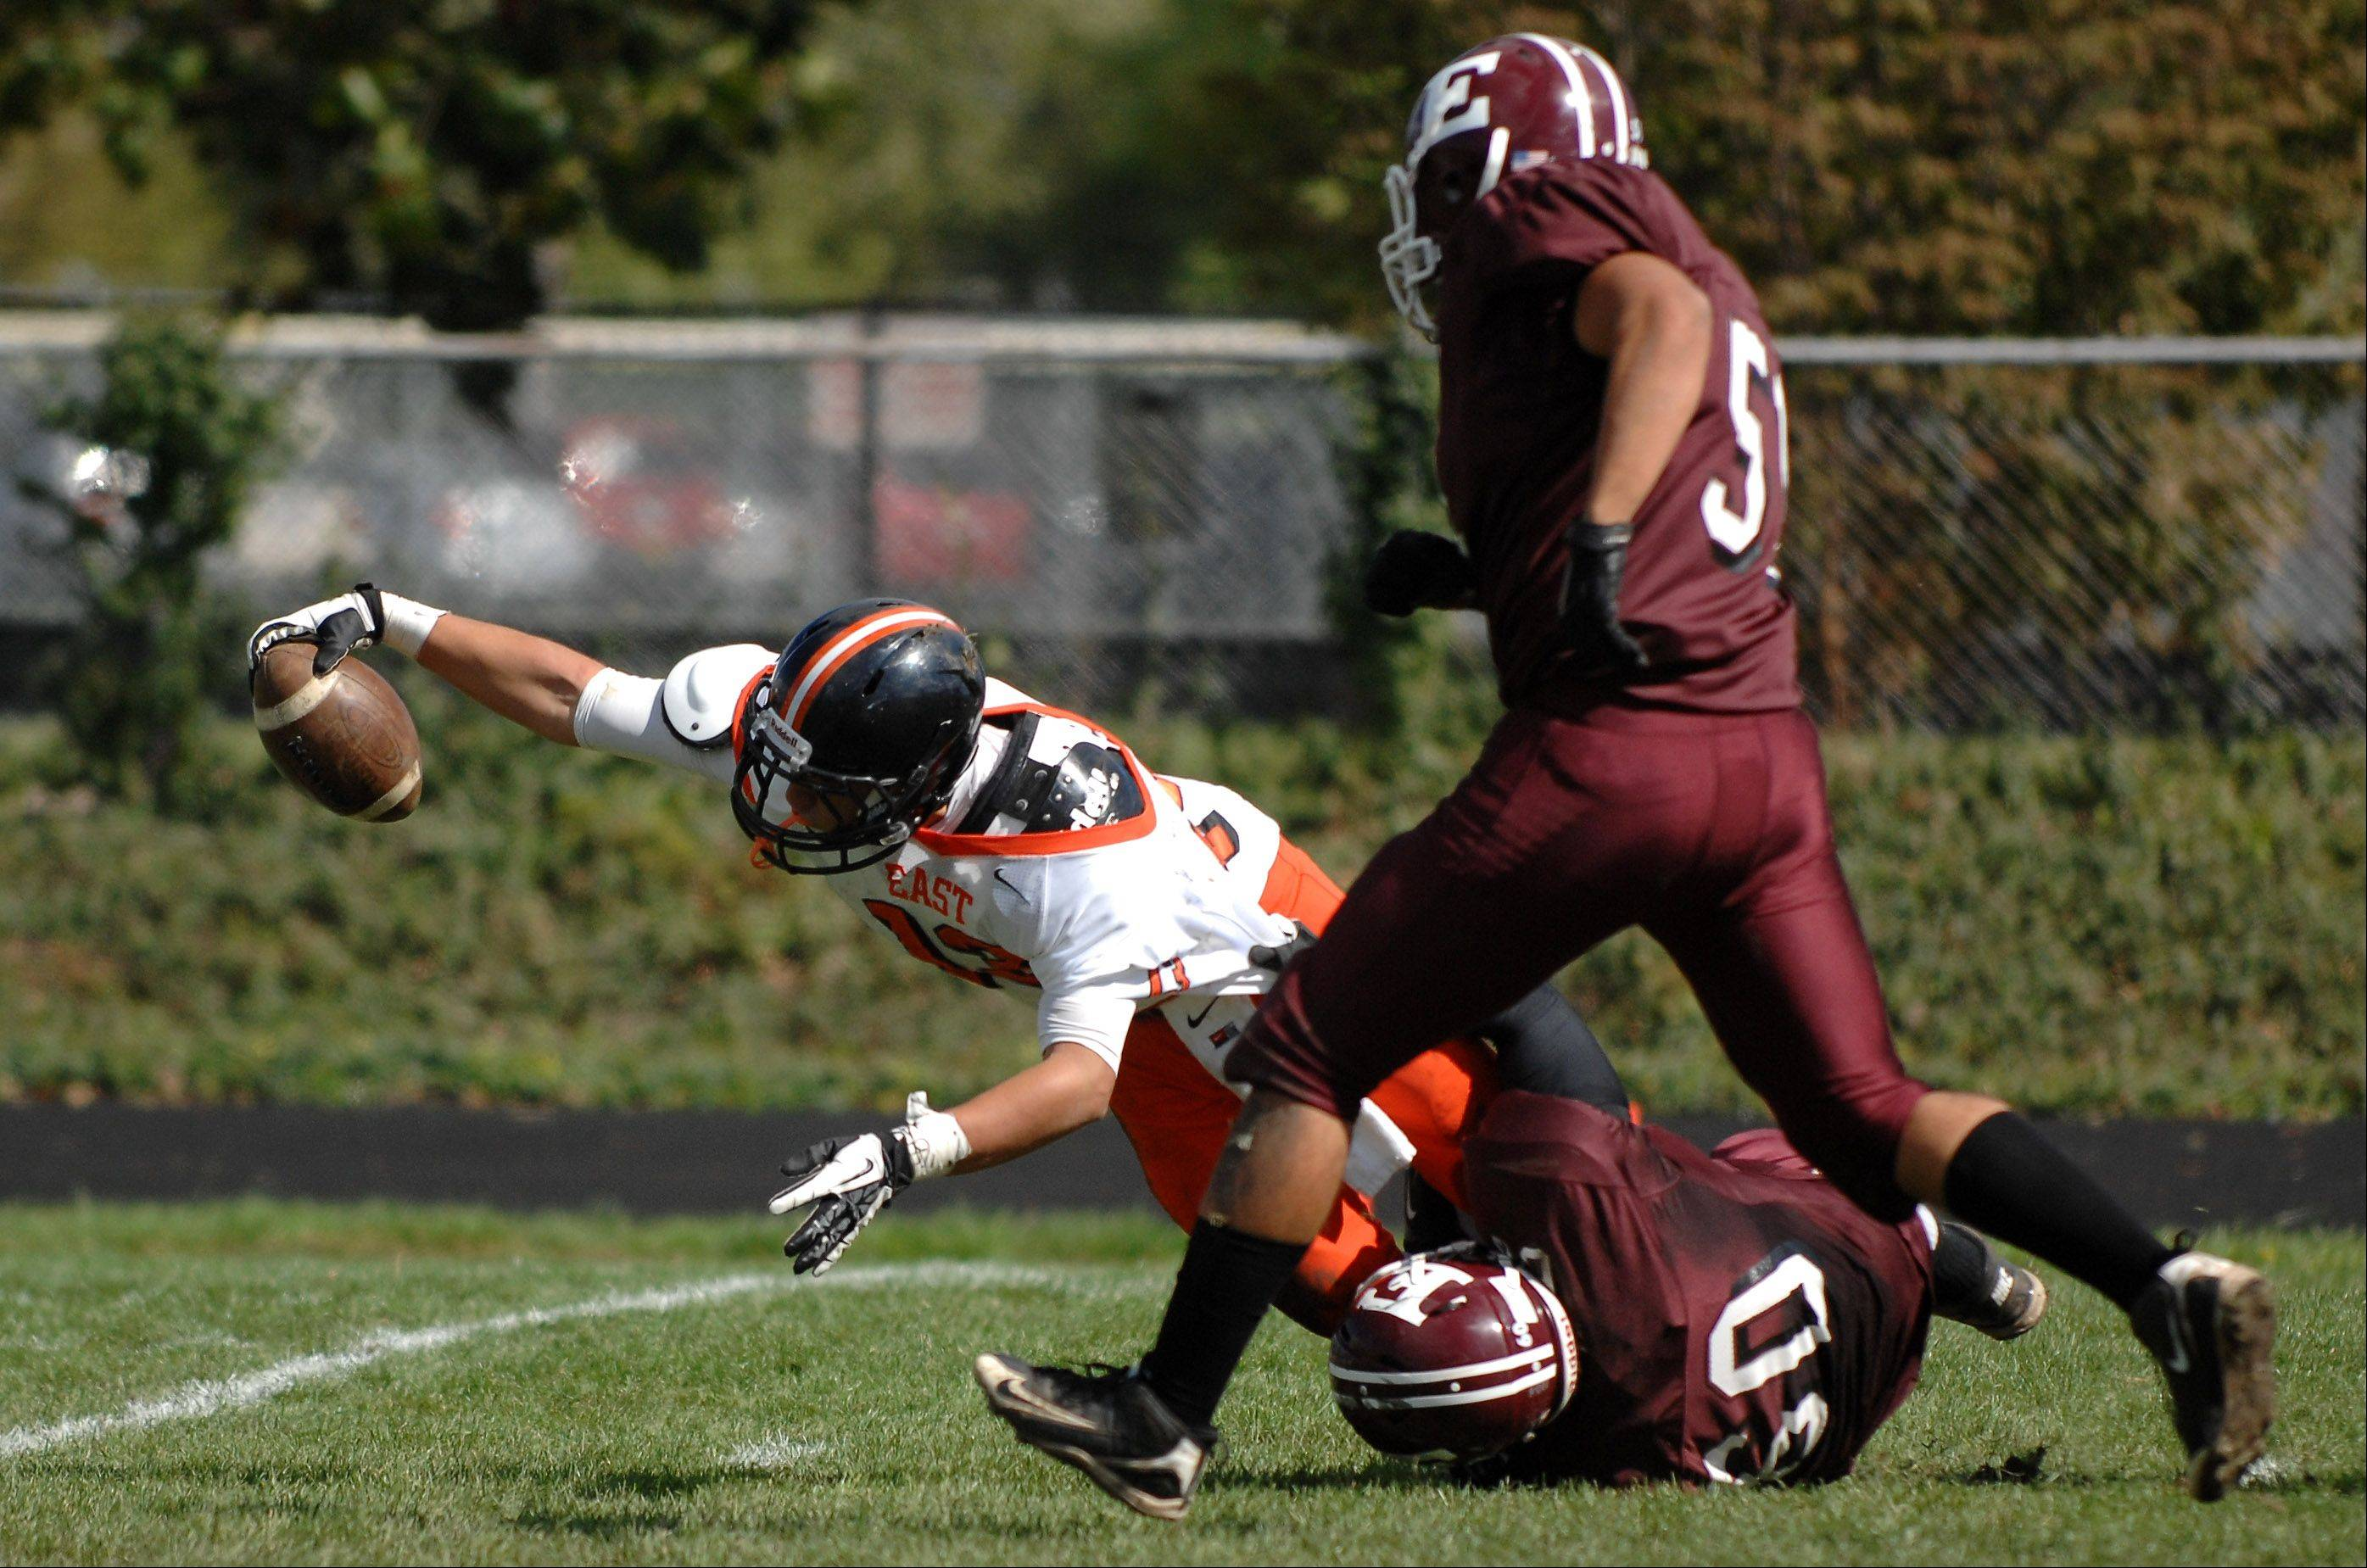 St. Charles East's Anthony Sciarrino dives and stretches for the goal line against Elgin at Memorial Field Saturday.